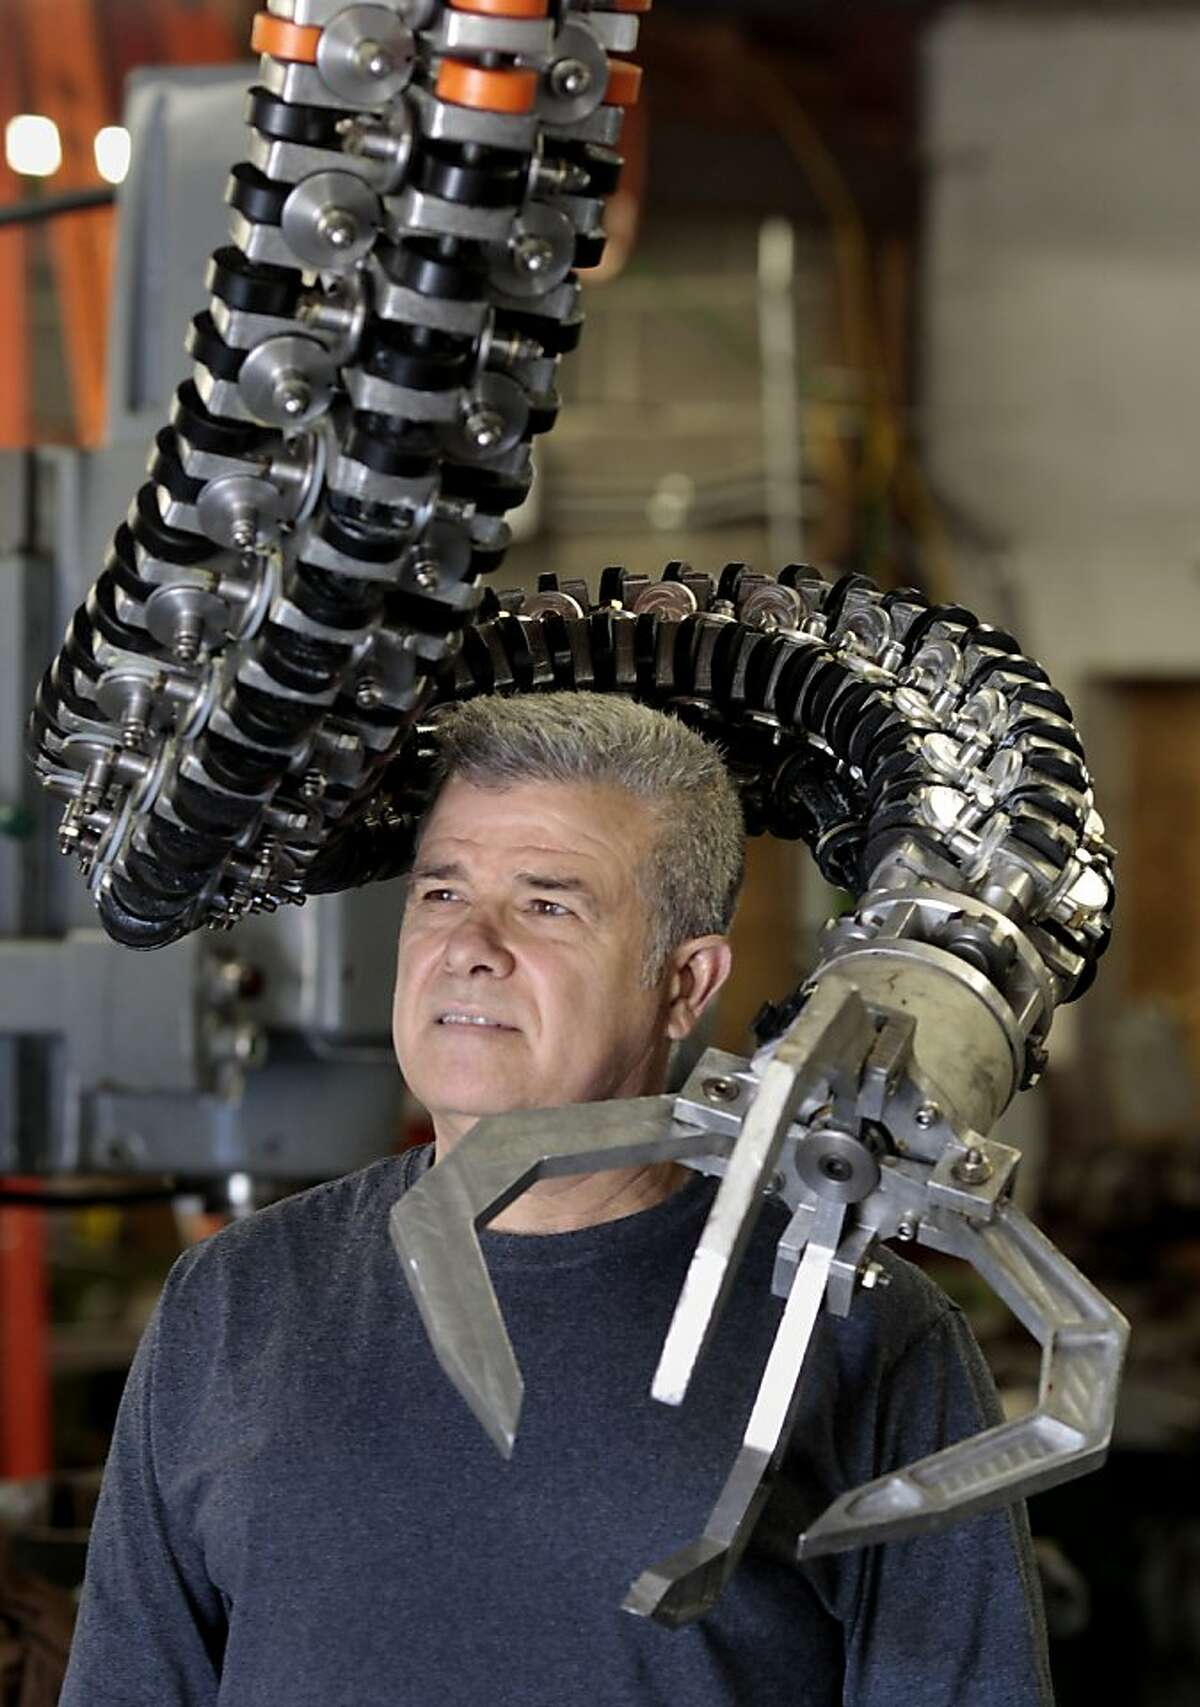 Mark Pauline stands near his spine machine, which is a robotic arm capable of flinging objects great distances. Legendary machine man Mark Pauline has moved his Survival Research Laboratories to Petaluma, Calif. where he continues to design and create his one-of-a-kind machines.